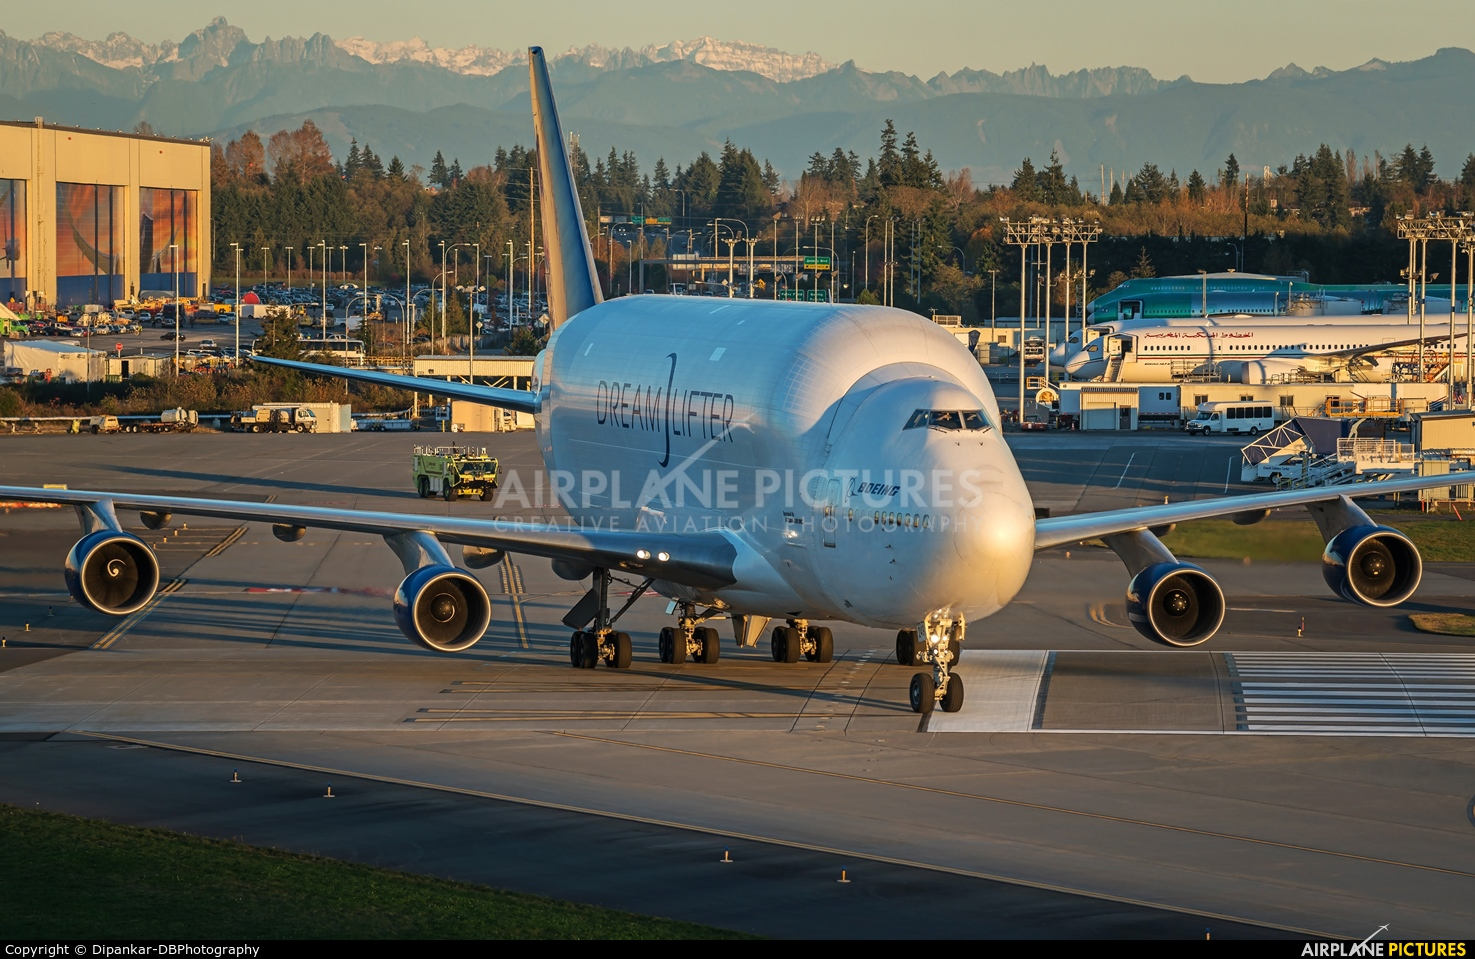 Boeing Company N249BA aircraft at Everett - Snohomish County / Paine Field